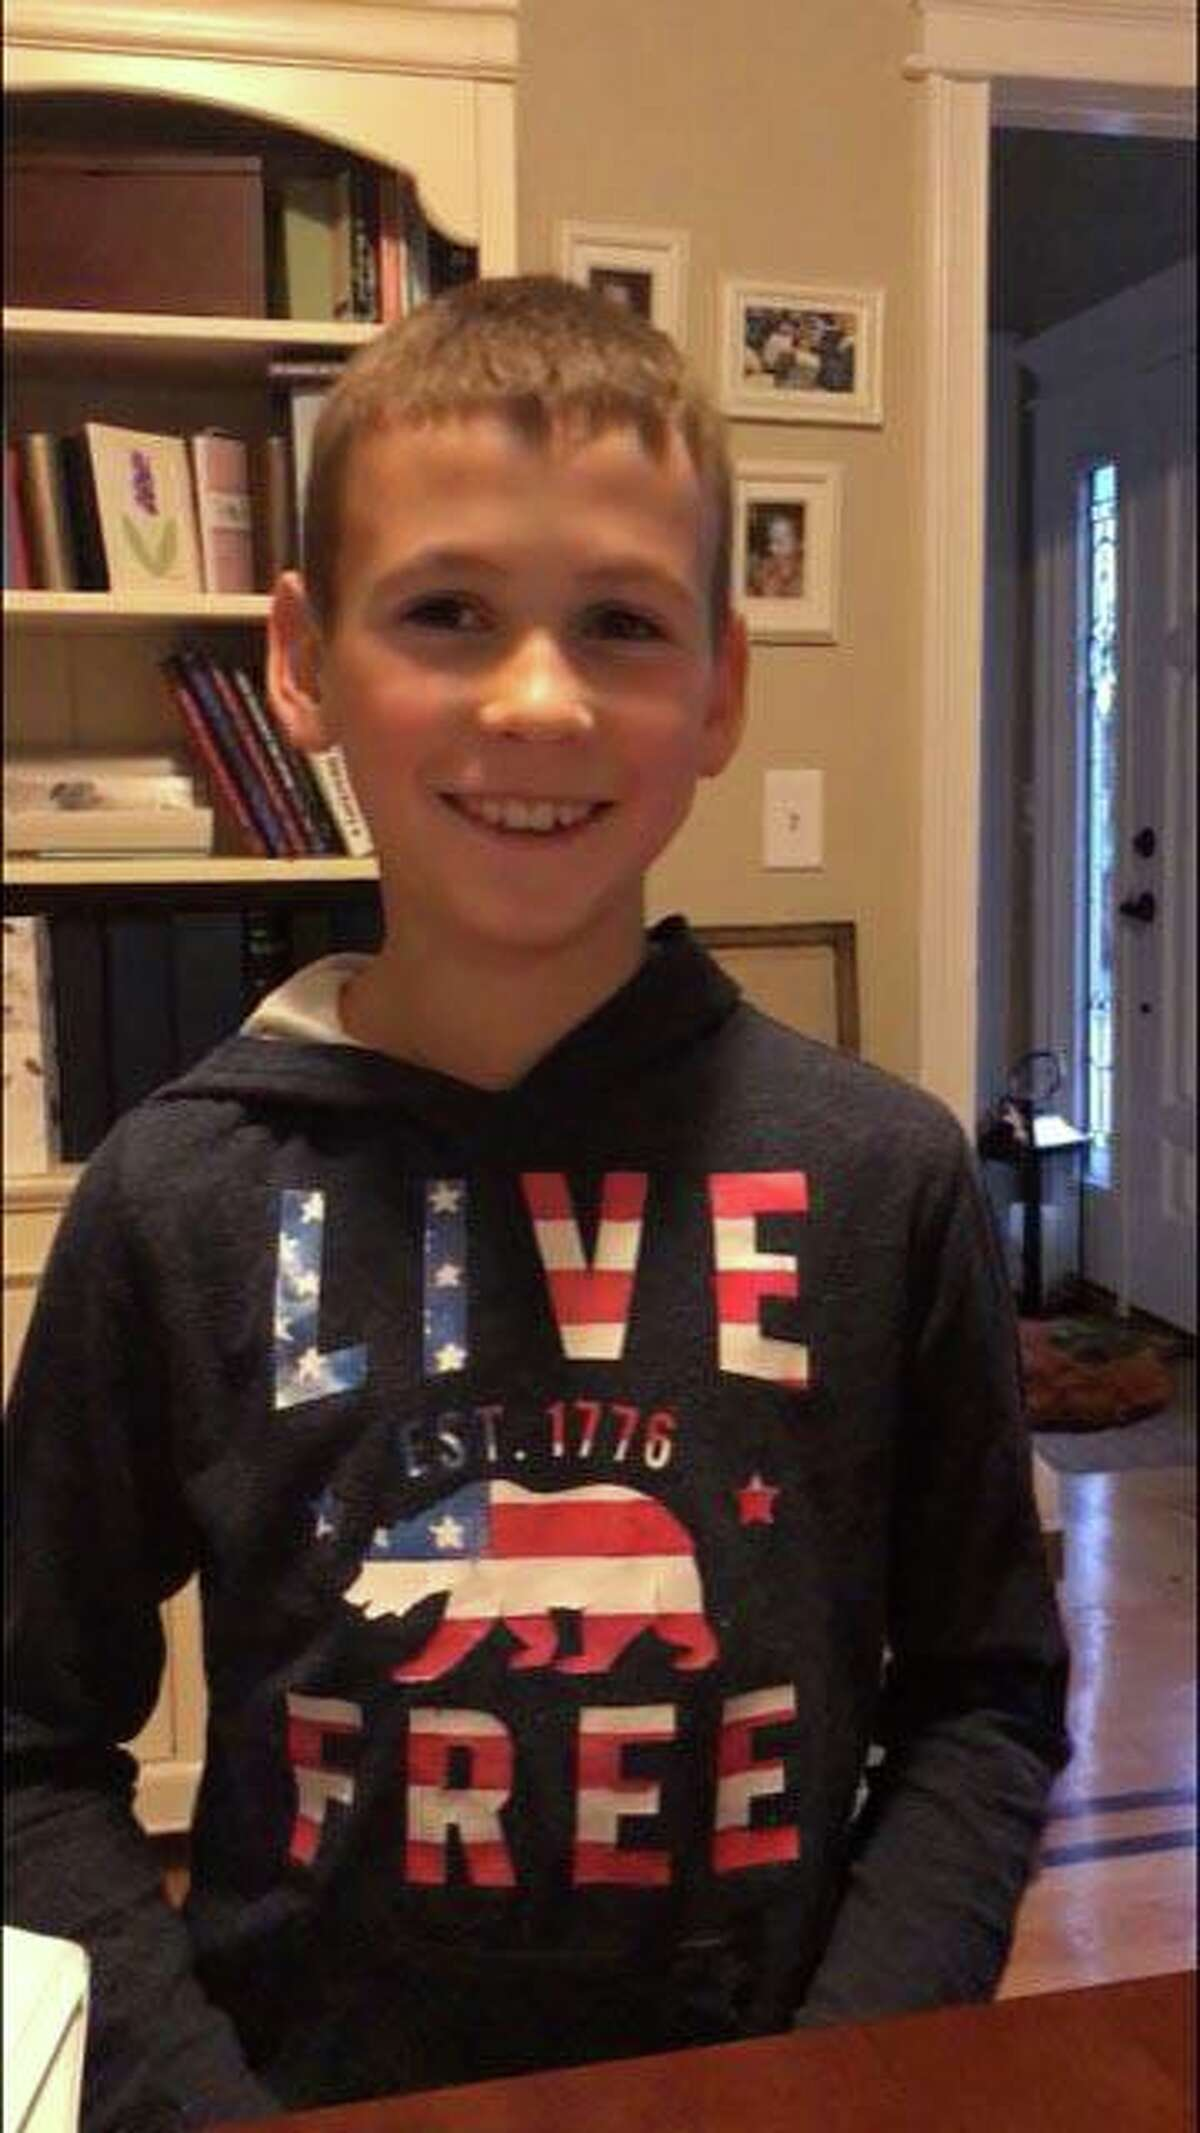 A bill known as Tristan's Law, named after the late Tristan Barhorst, would institute new safety requirements for ice cream trucks. Tristan, 10, of Wallingford, was struck and killed by a car after buying ice cream from an ice cream truck in Cheshire, Conn., on June 12, 2020.